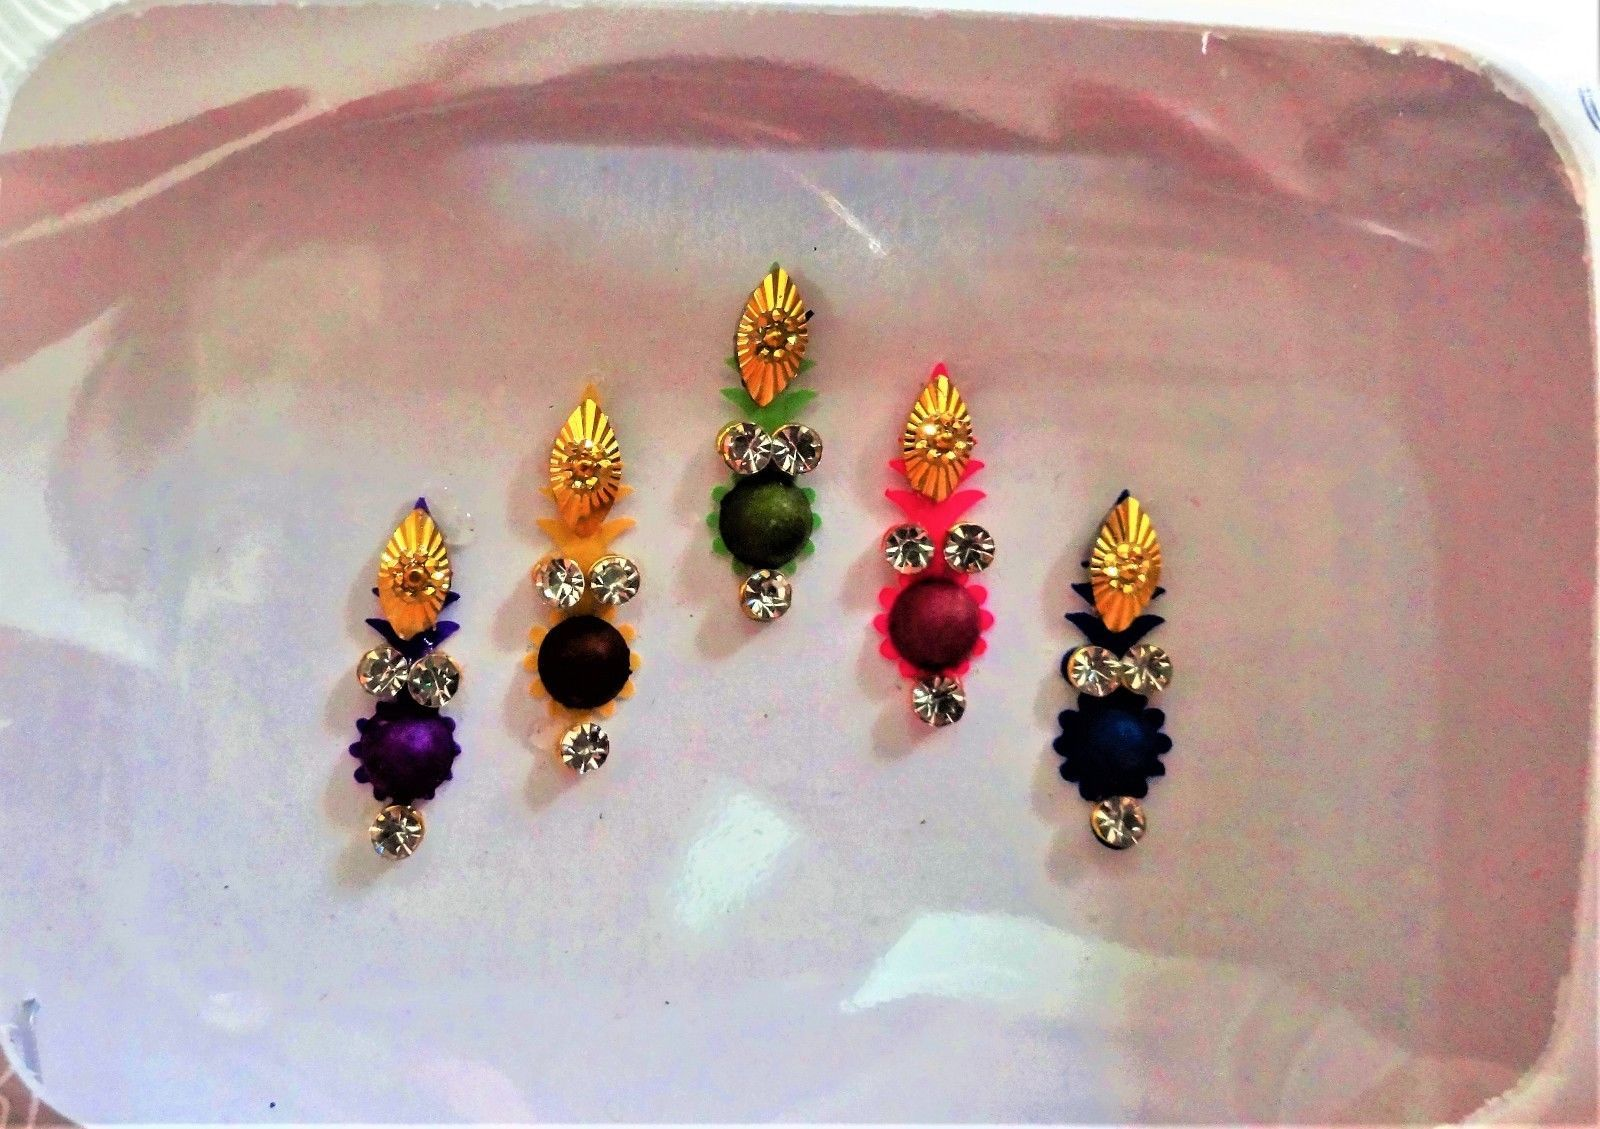 Sticker Bindi Multi Color Crystal Temporary And 50 Similar Items Tatto Hb577 Tattoo Ear Nose Stud Bollywood Style